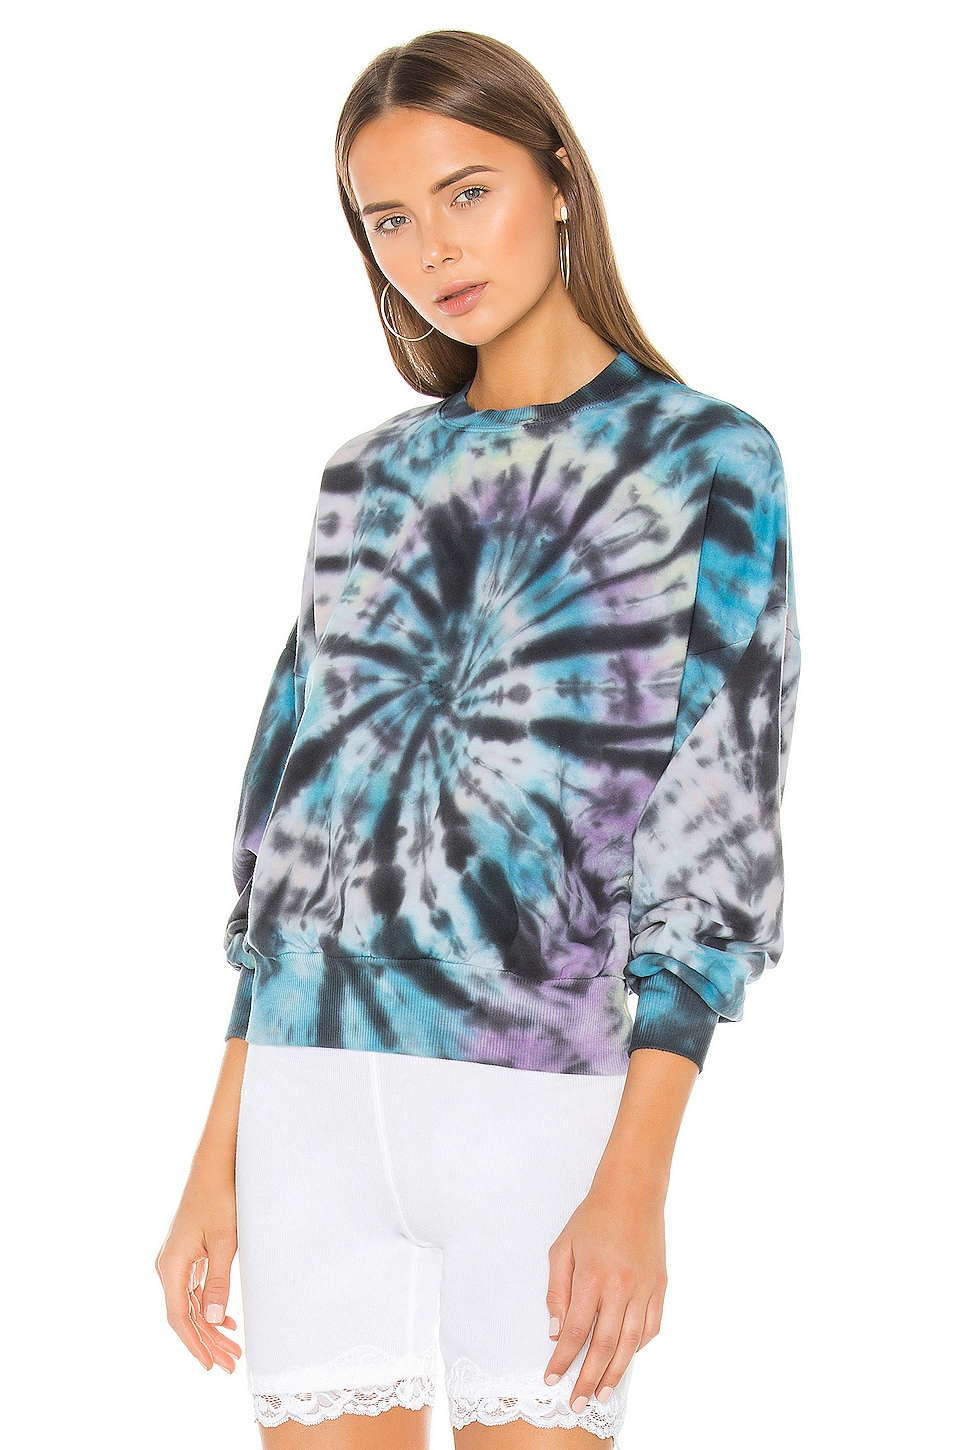 Lovers + Friends Tie Dye Pullover in Black Swirl